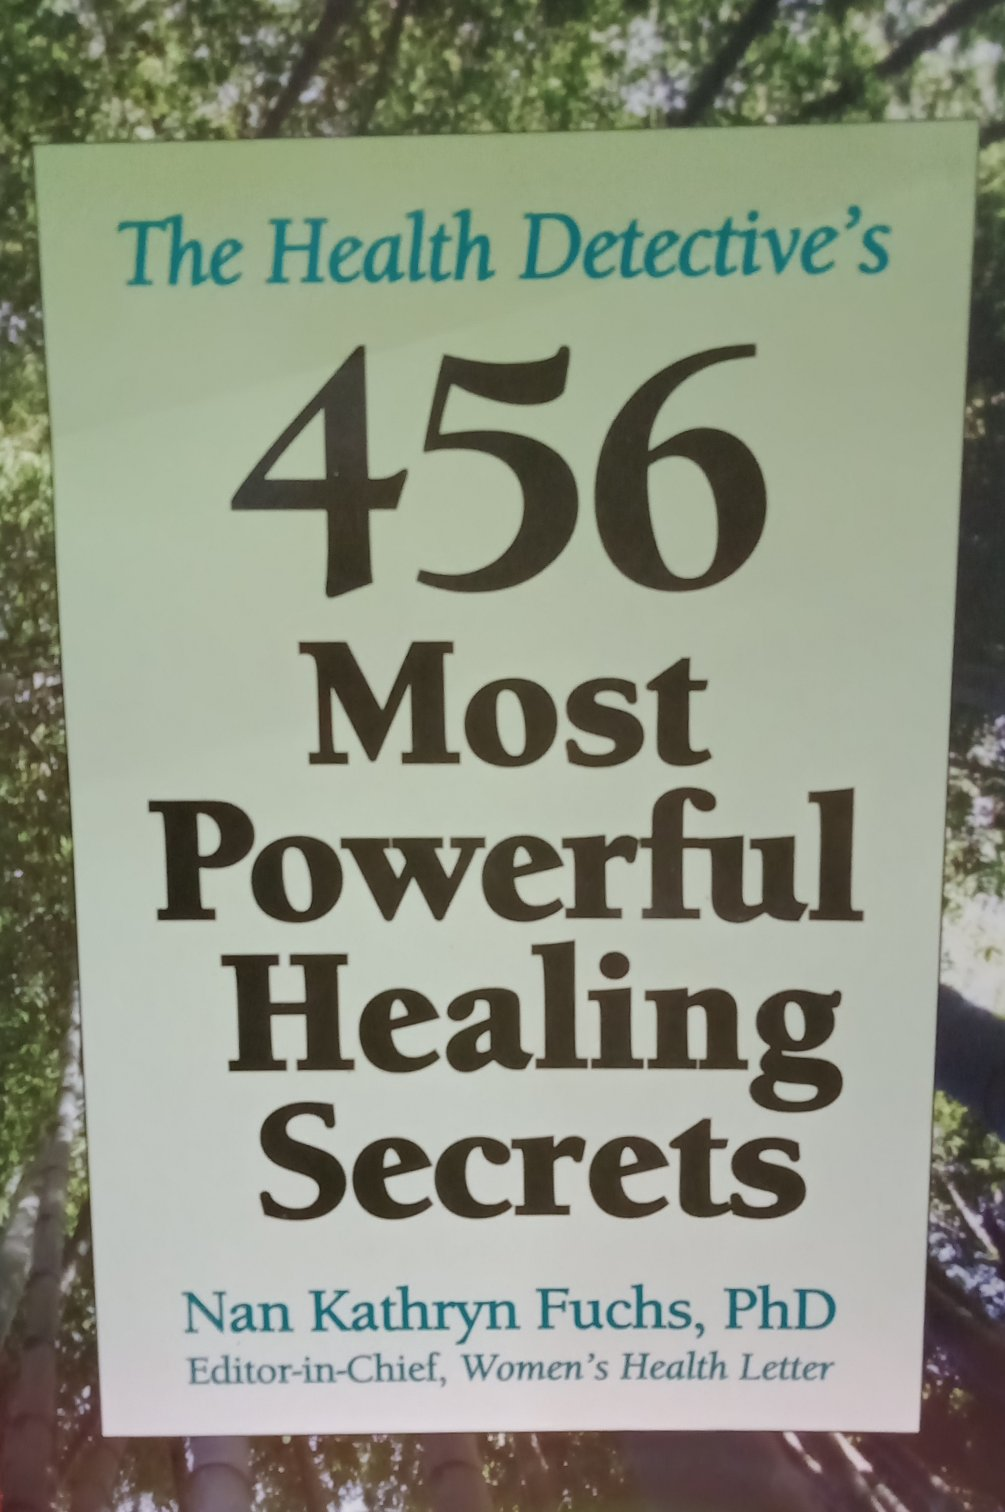 456 most powerful healing secrets By Nan Kathryn Funchs